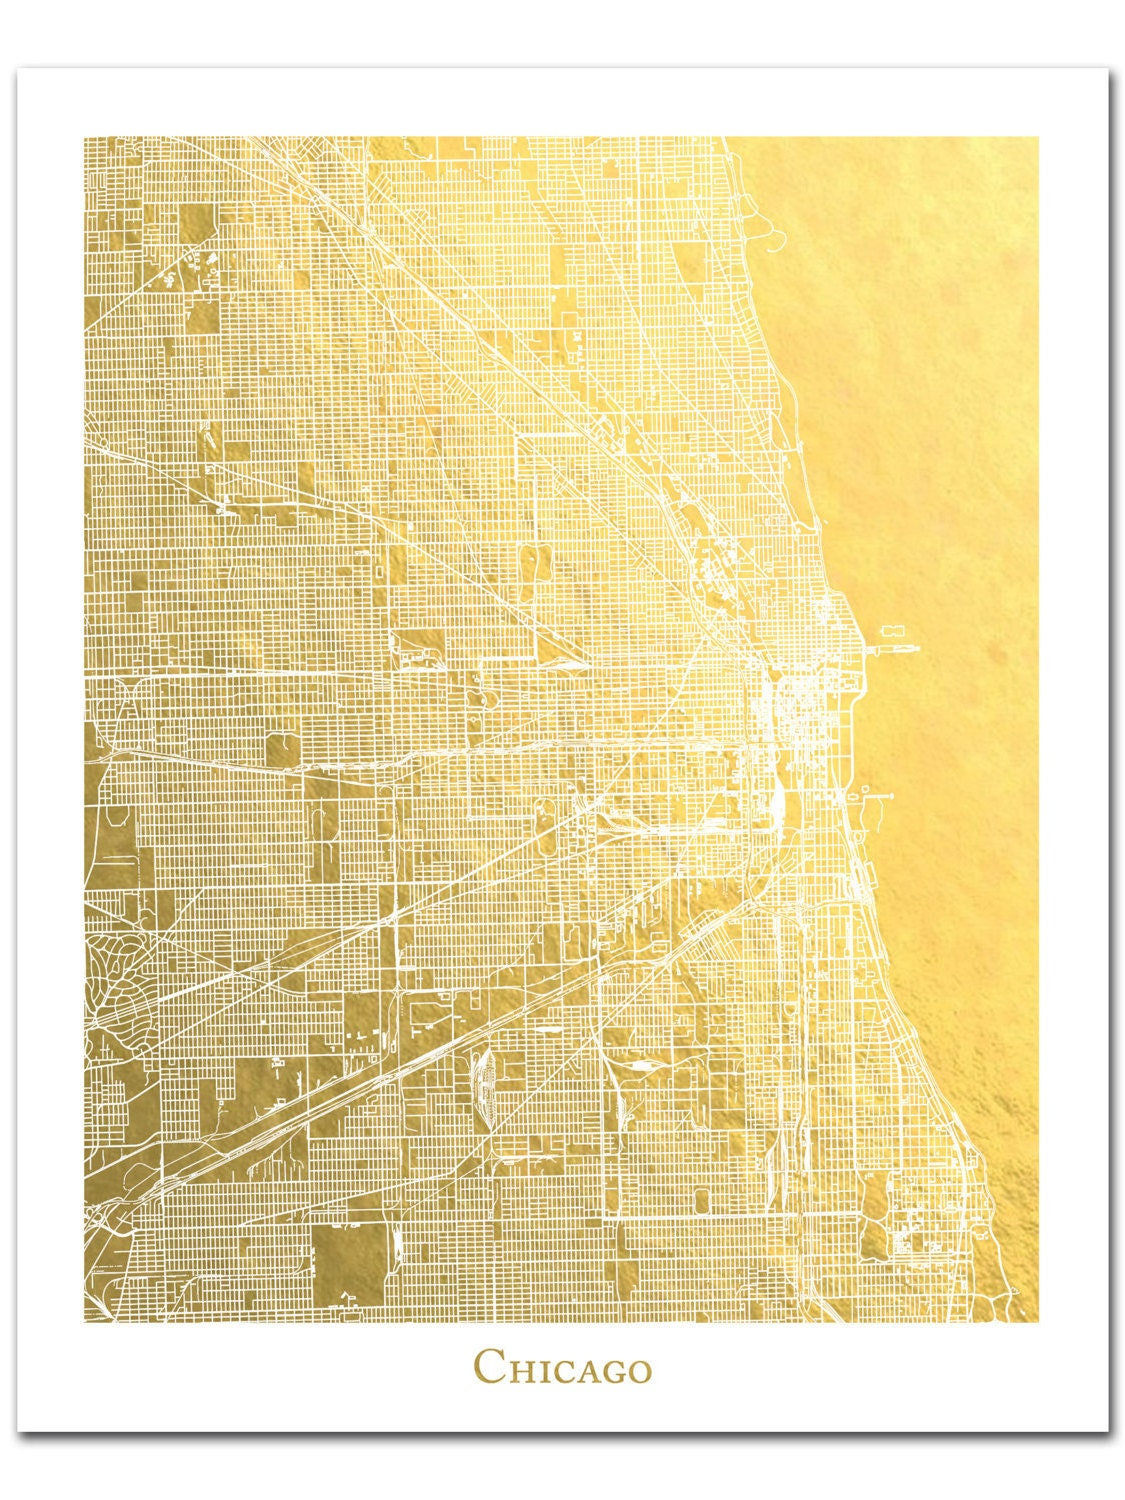 Chicago Map Chicago Print Gold Foil Print Gold Foil Map™